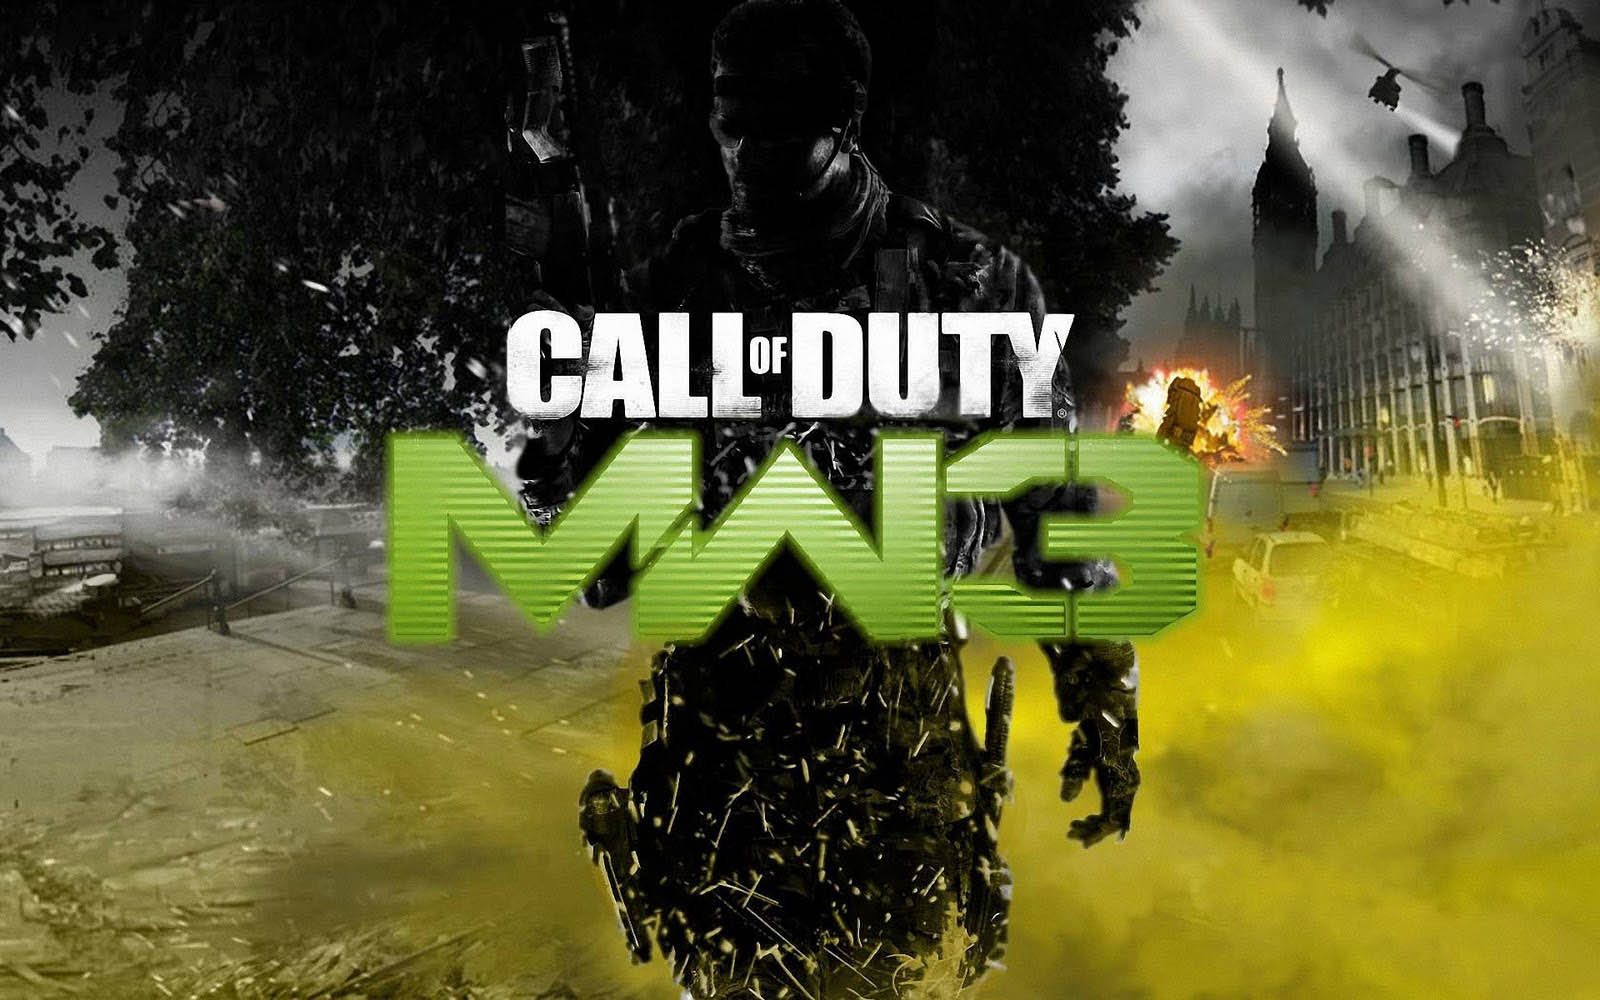 Wallpapers call of duty modern warfare 3 game wallpapers - Mw3 wallpaper ...